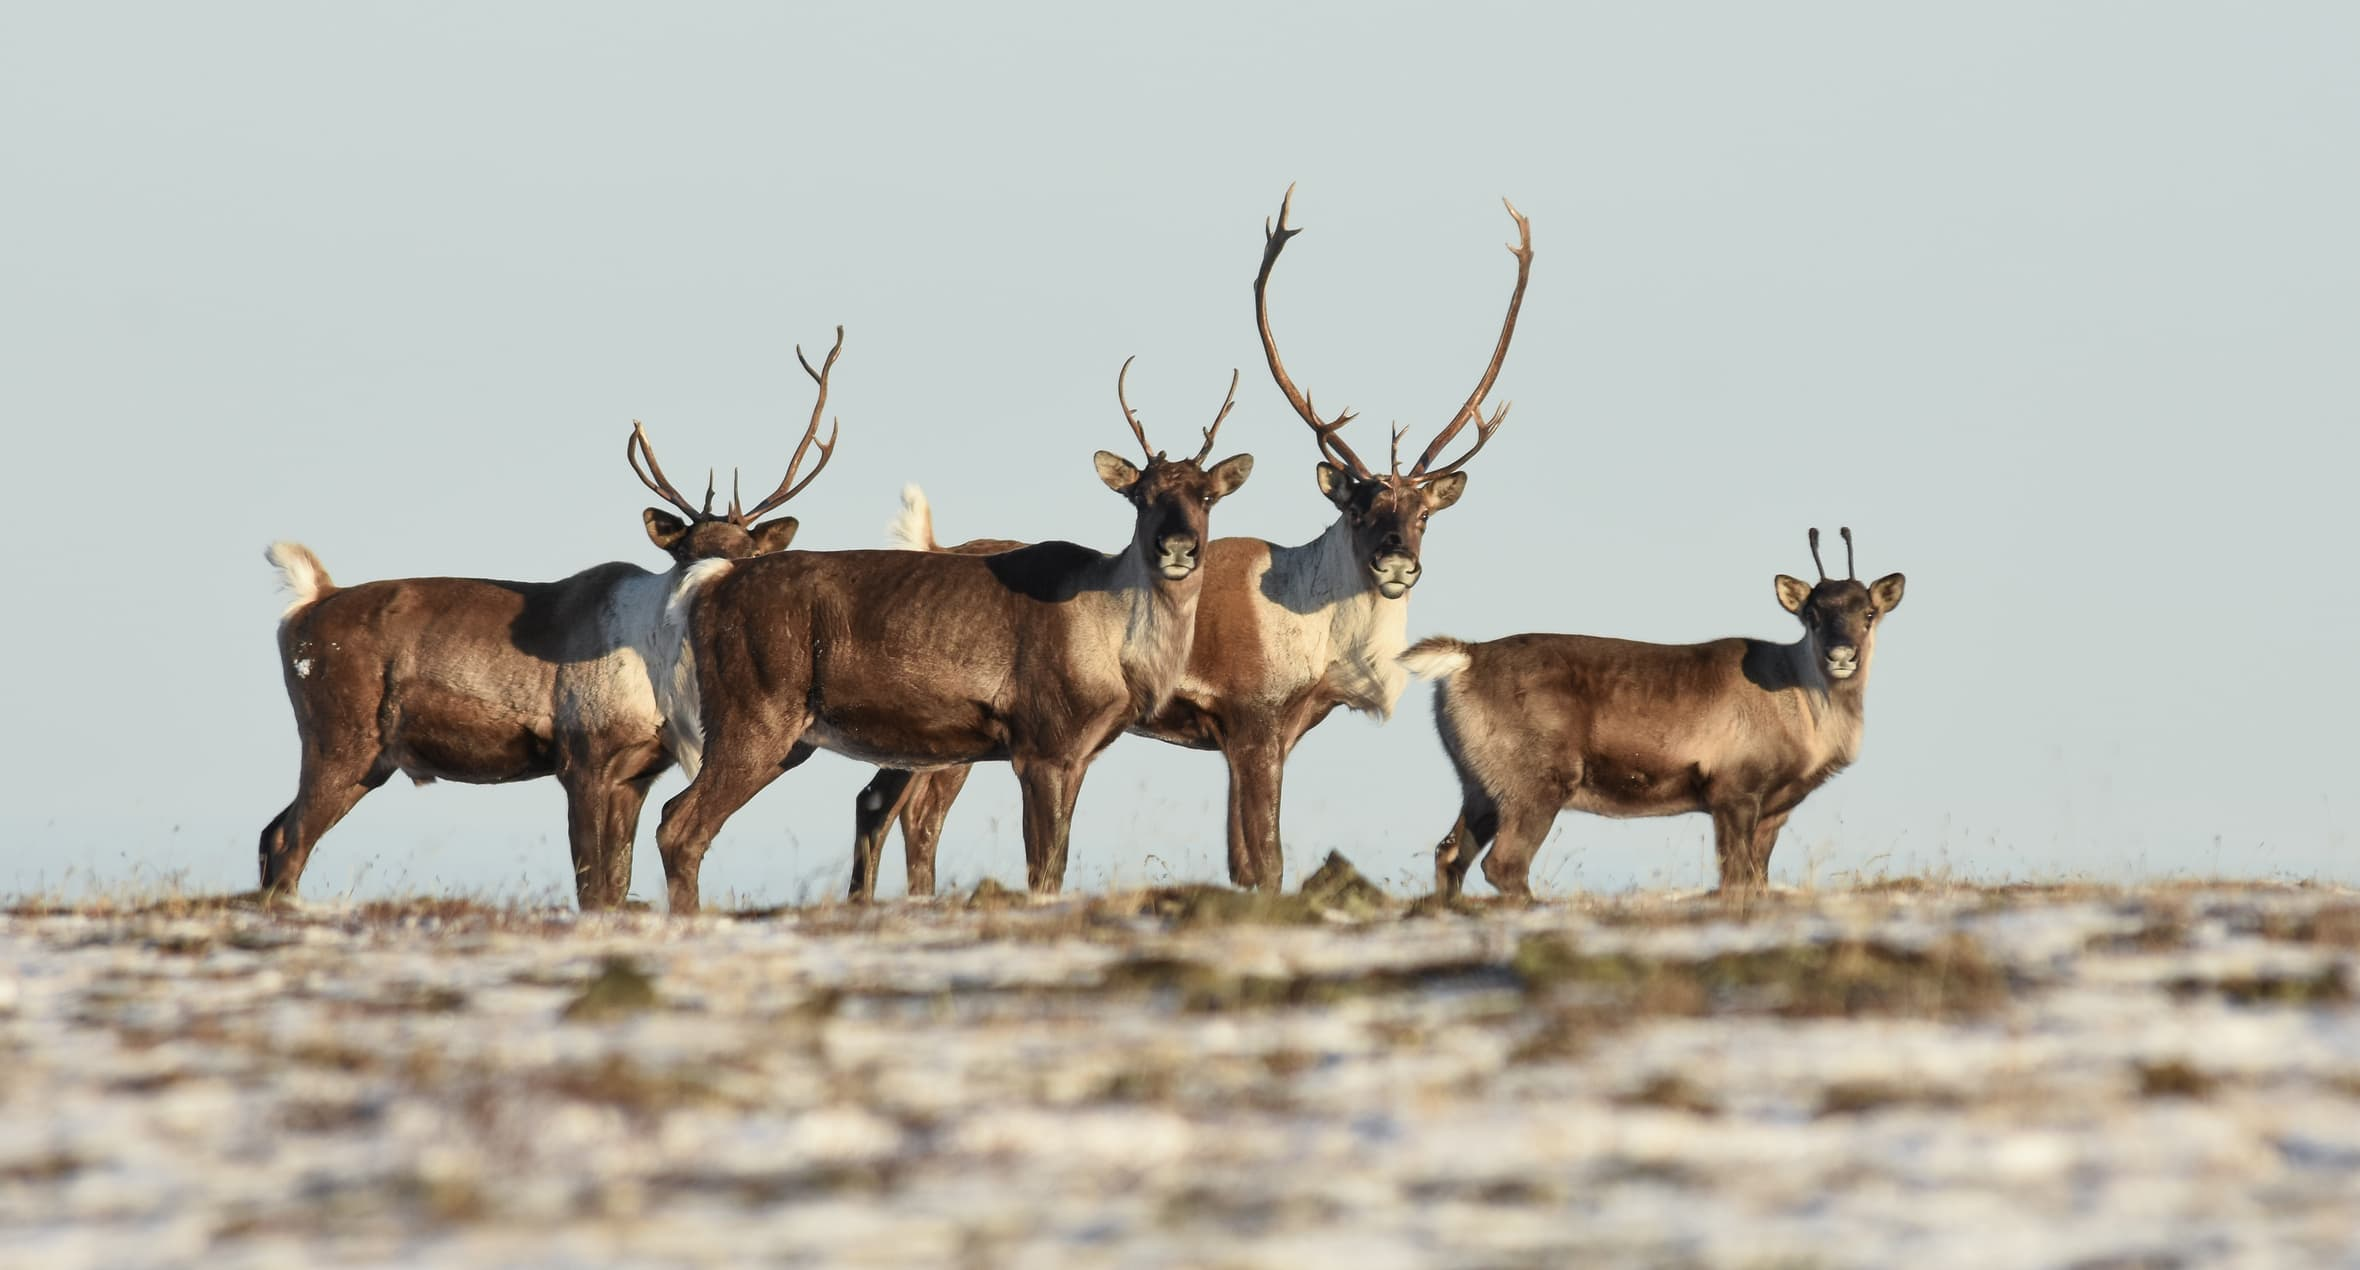 Alaska Band of Caribou in Field With Antlers